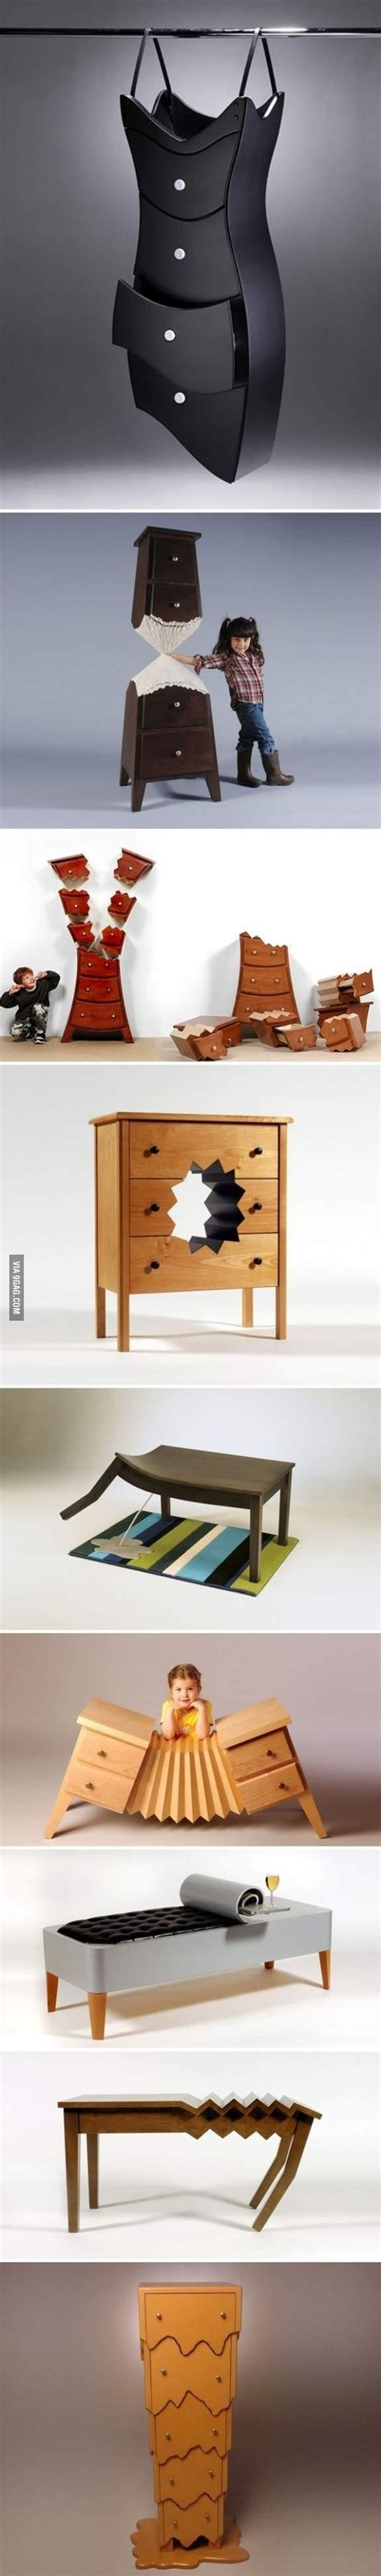 crazy couches crazy furniture 9gag